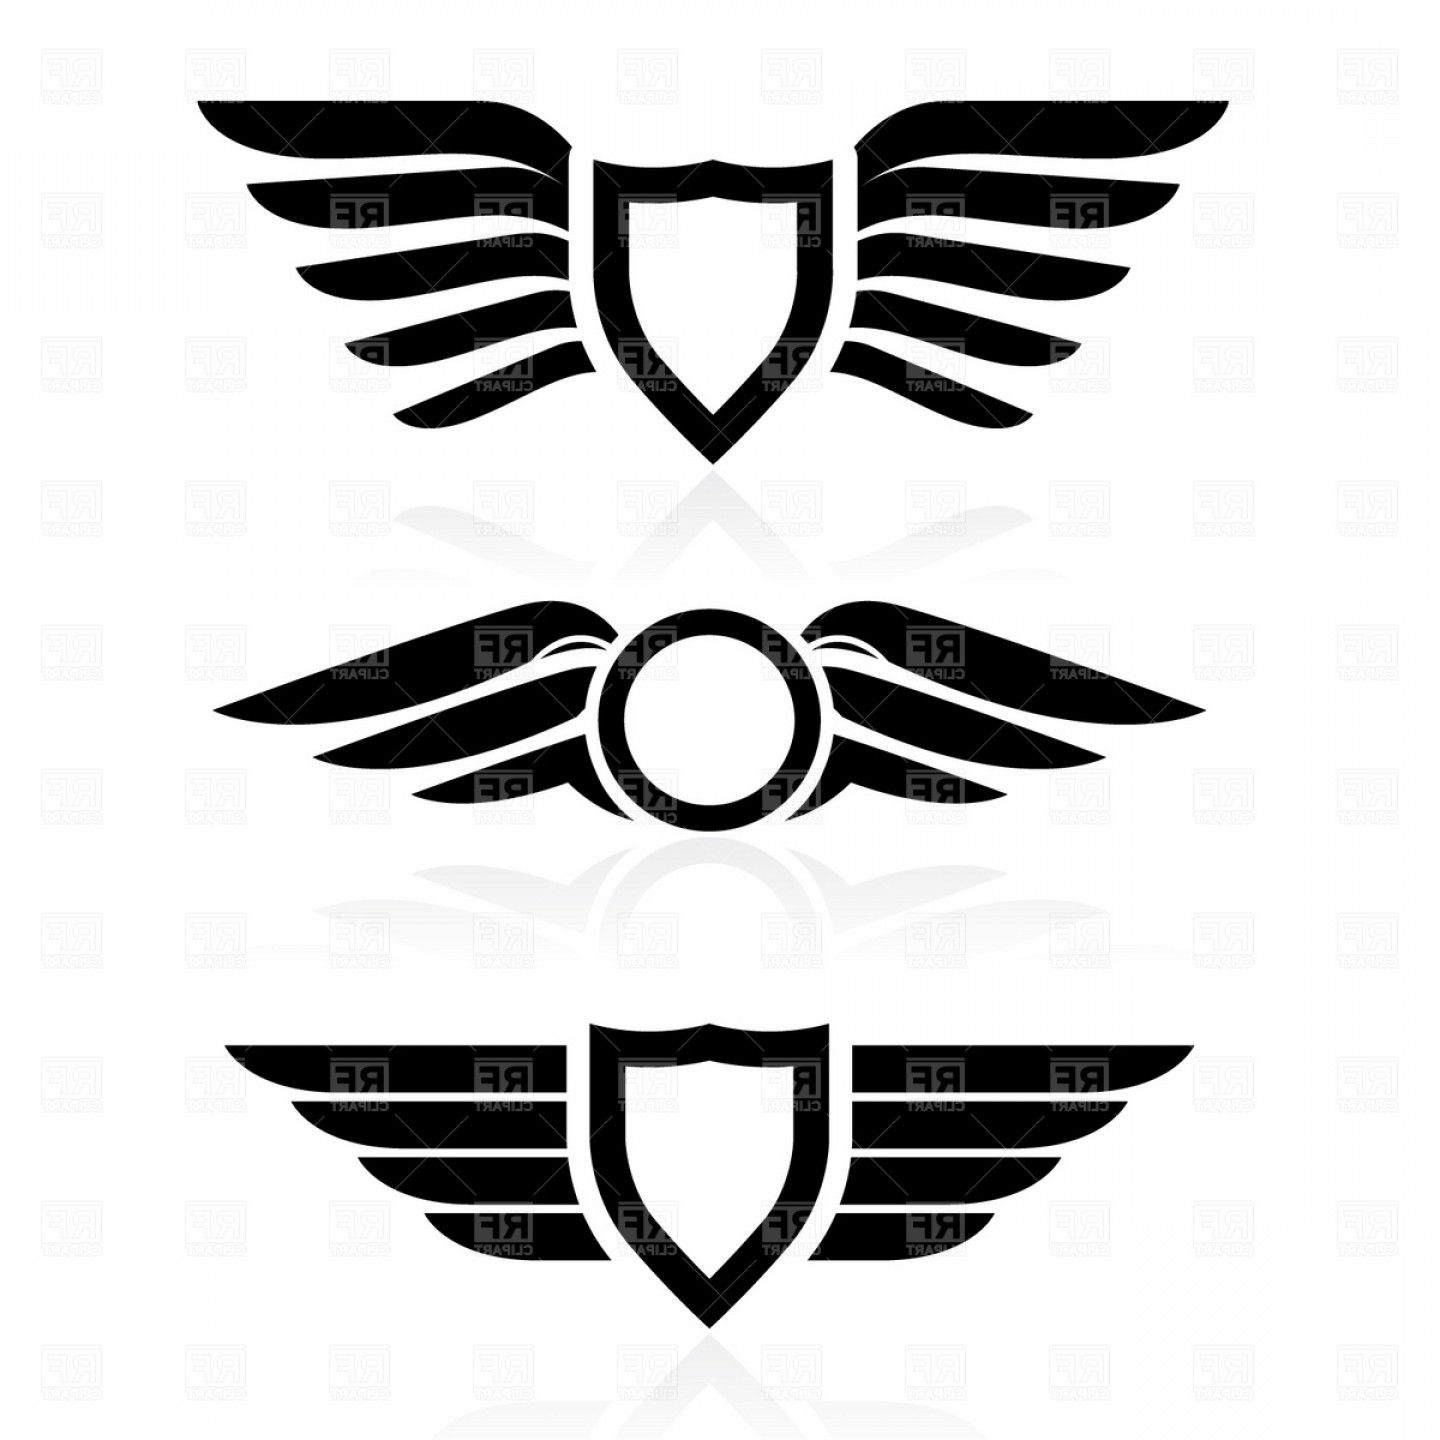 Free Vector Download Sites: Fileshield With Wings Symbol Download Royalty Free Vector File Eps